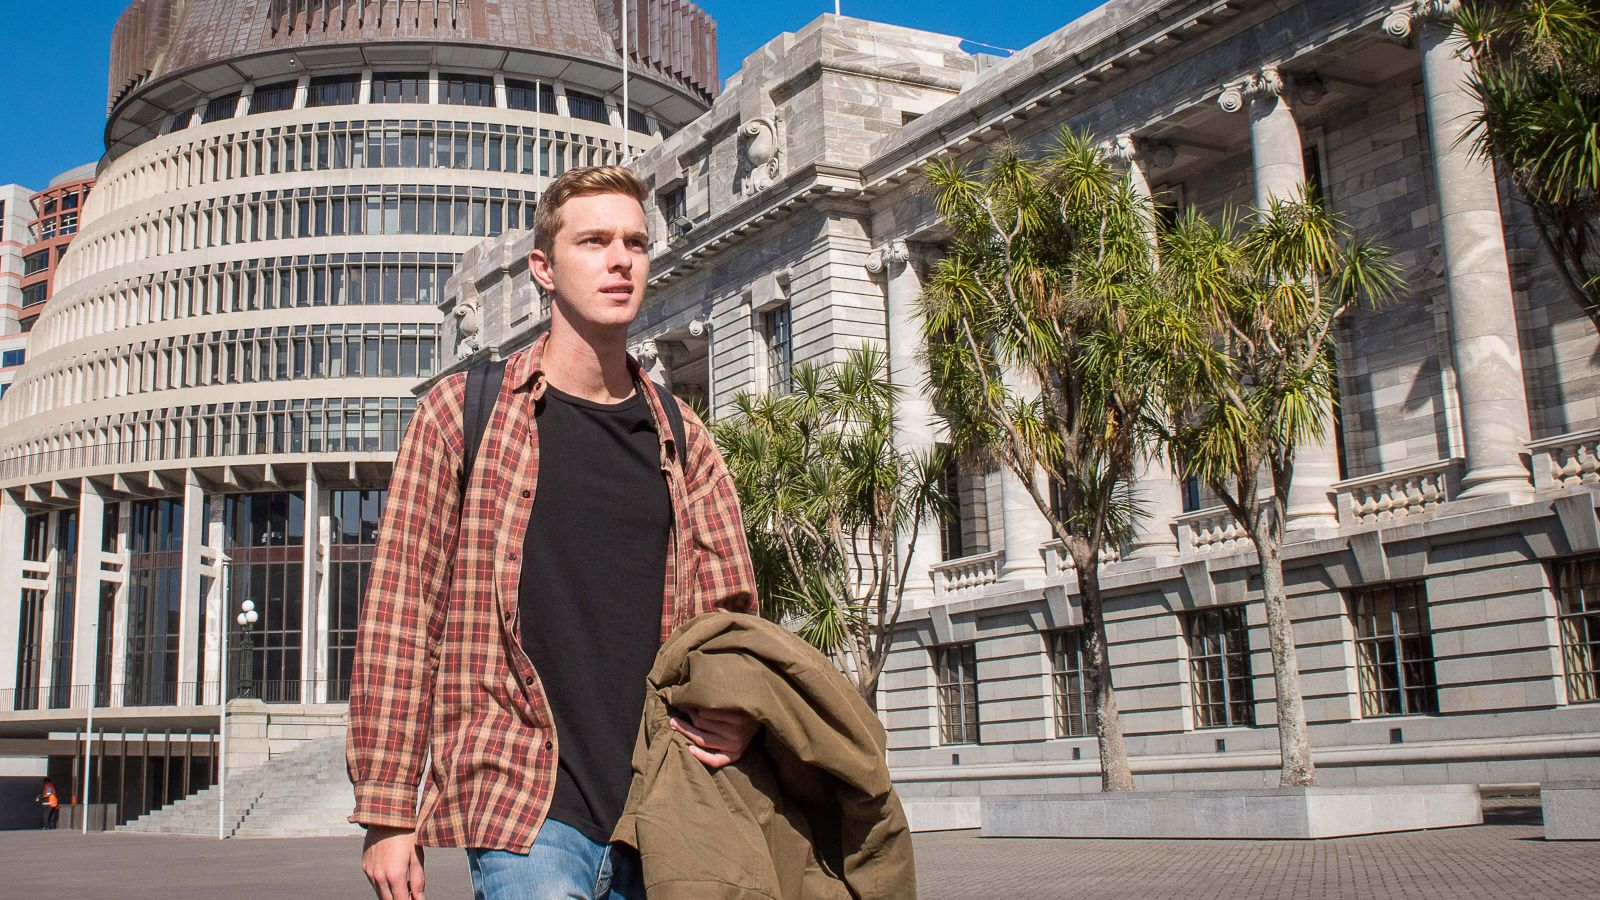 A young man dressed in a plaid shirt, black top, and blue jeans walks past the complex of New Zealand Parliament.